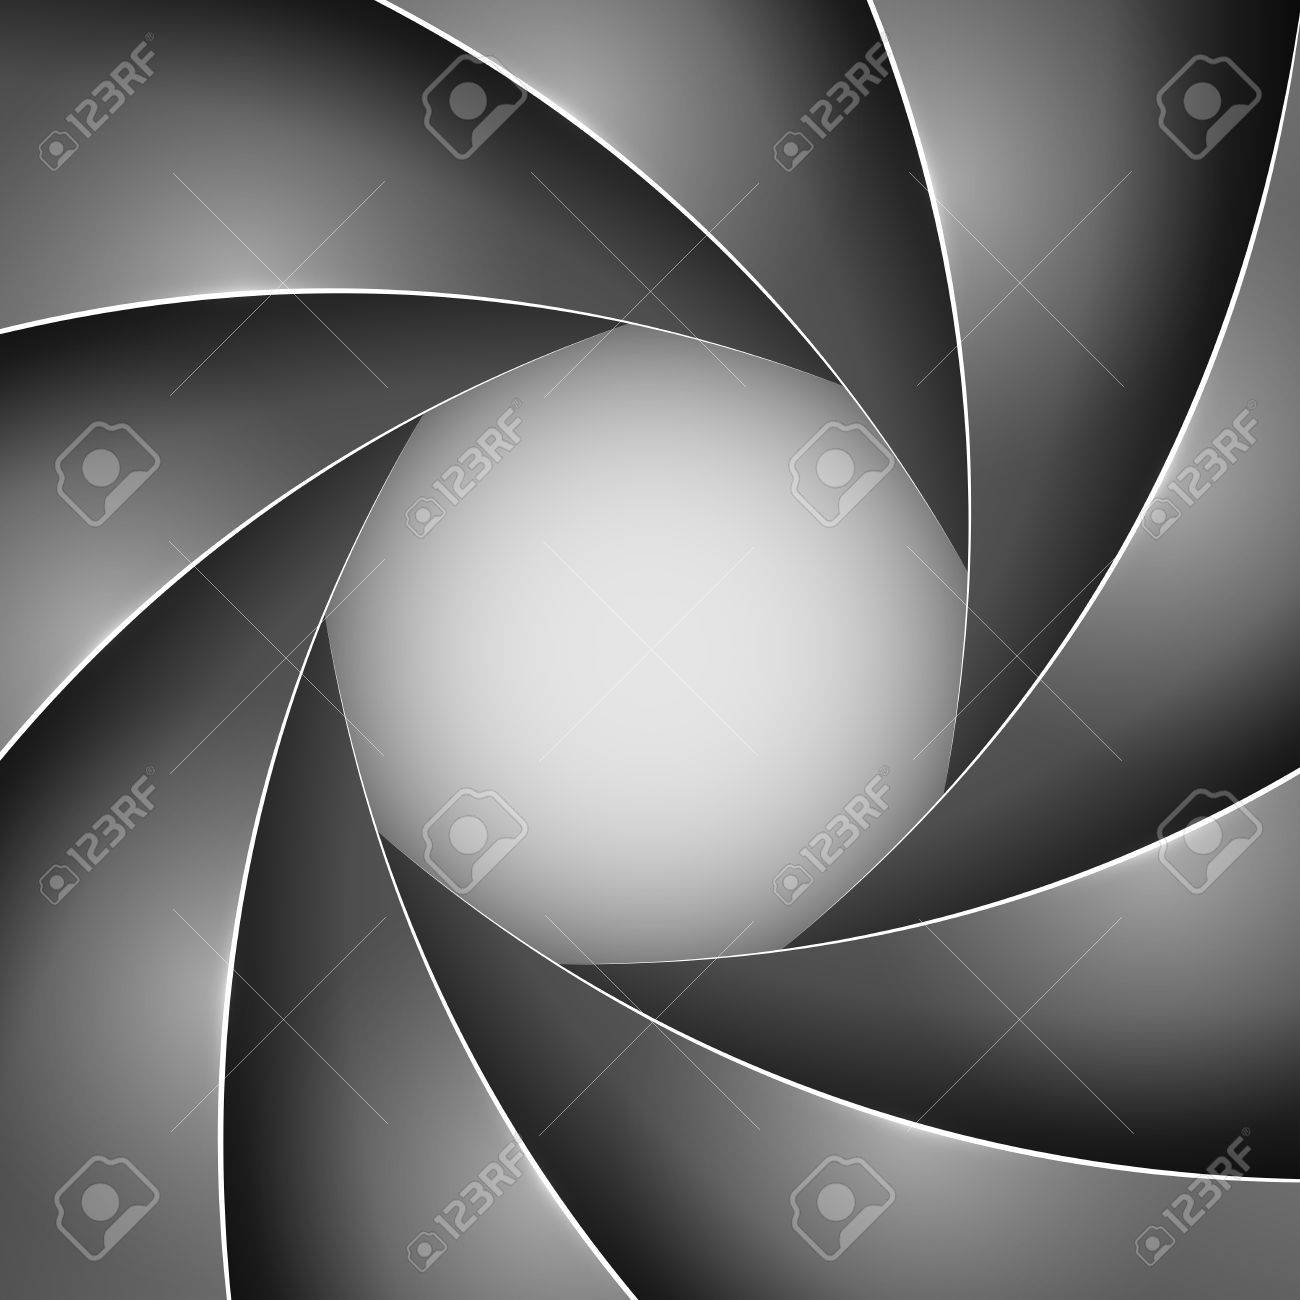 Abstract black photo shutter aperture vector background with copy space Stock Vector - 19975678